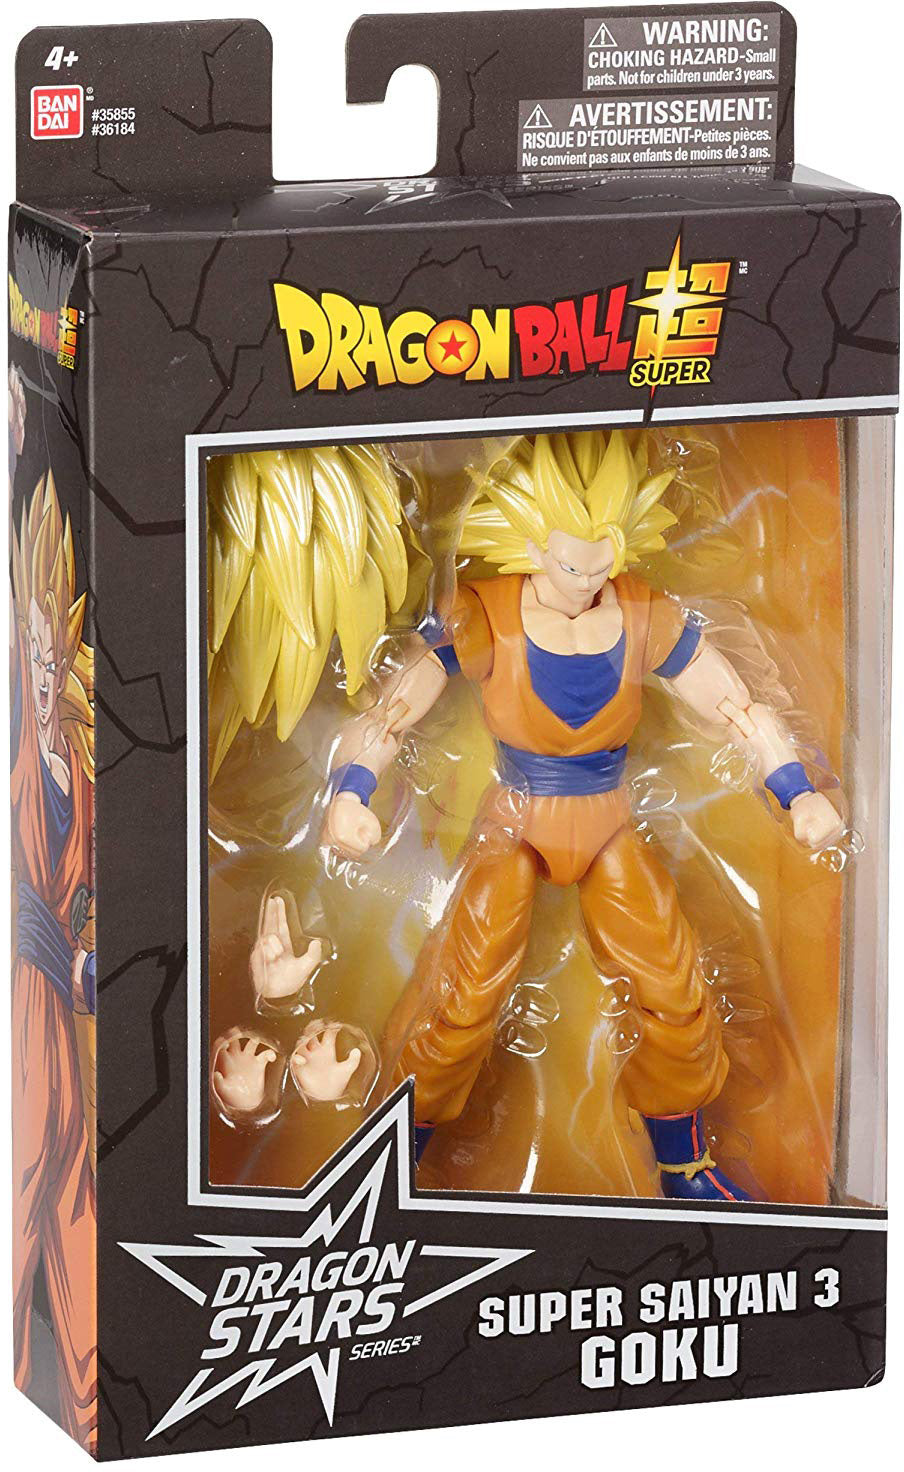 Dragonball Super 6 Inch Action Figure Dragon Stars Series 10 - Super Saiyan 3 Goku